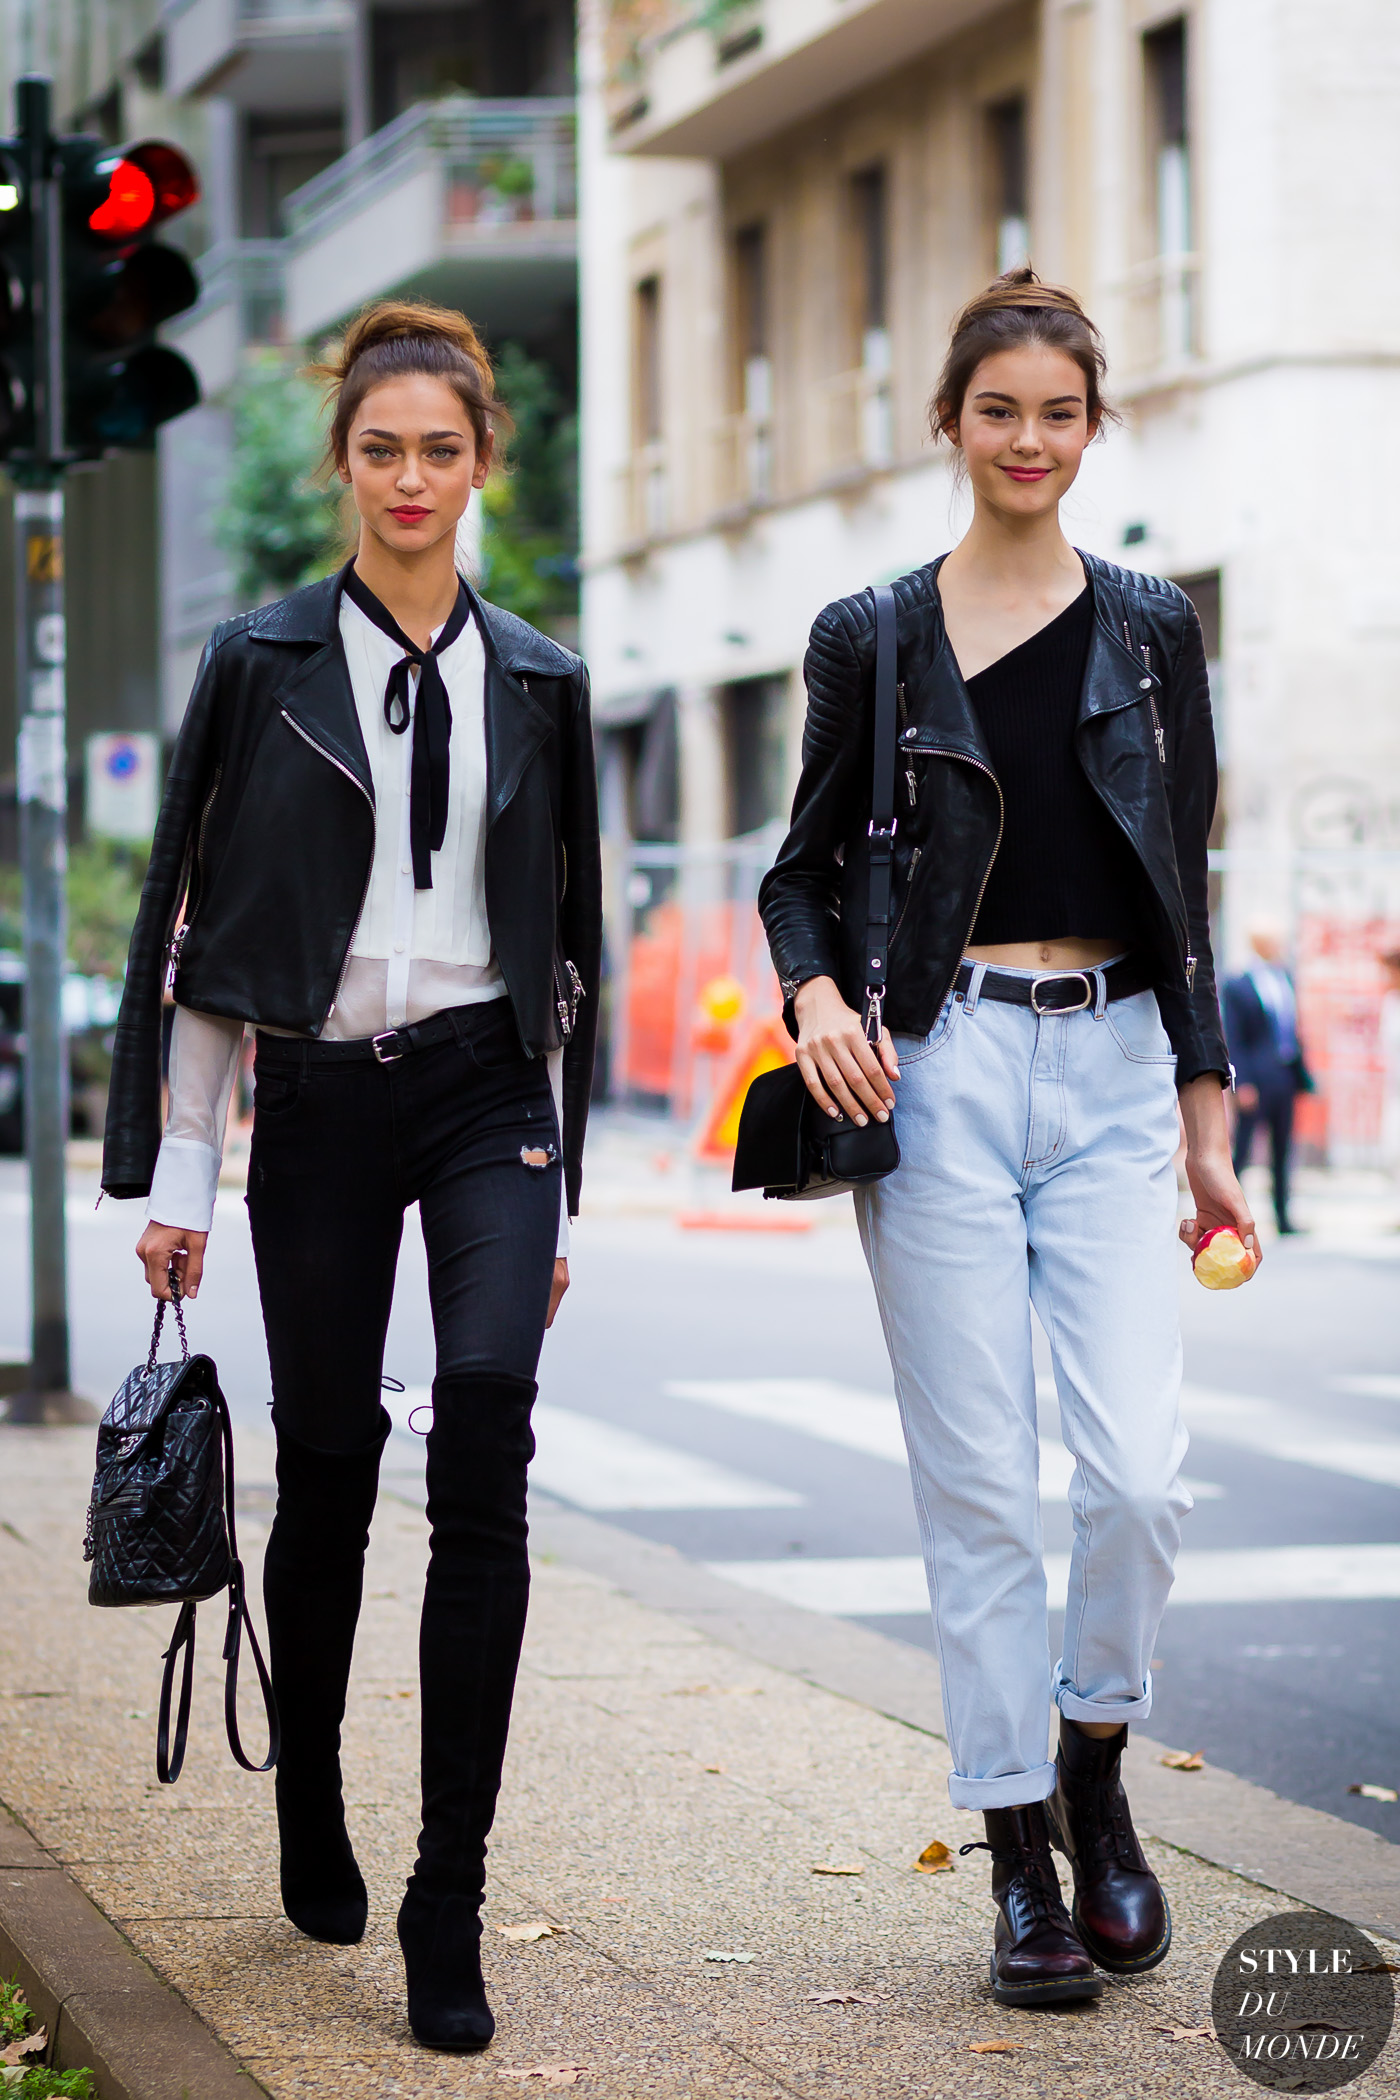 Zhenya Katava and Irina Shnitman Street Style Street Fashion Streetsnaps by STYLEDUMONDE Street Style Fashion Photography